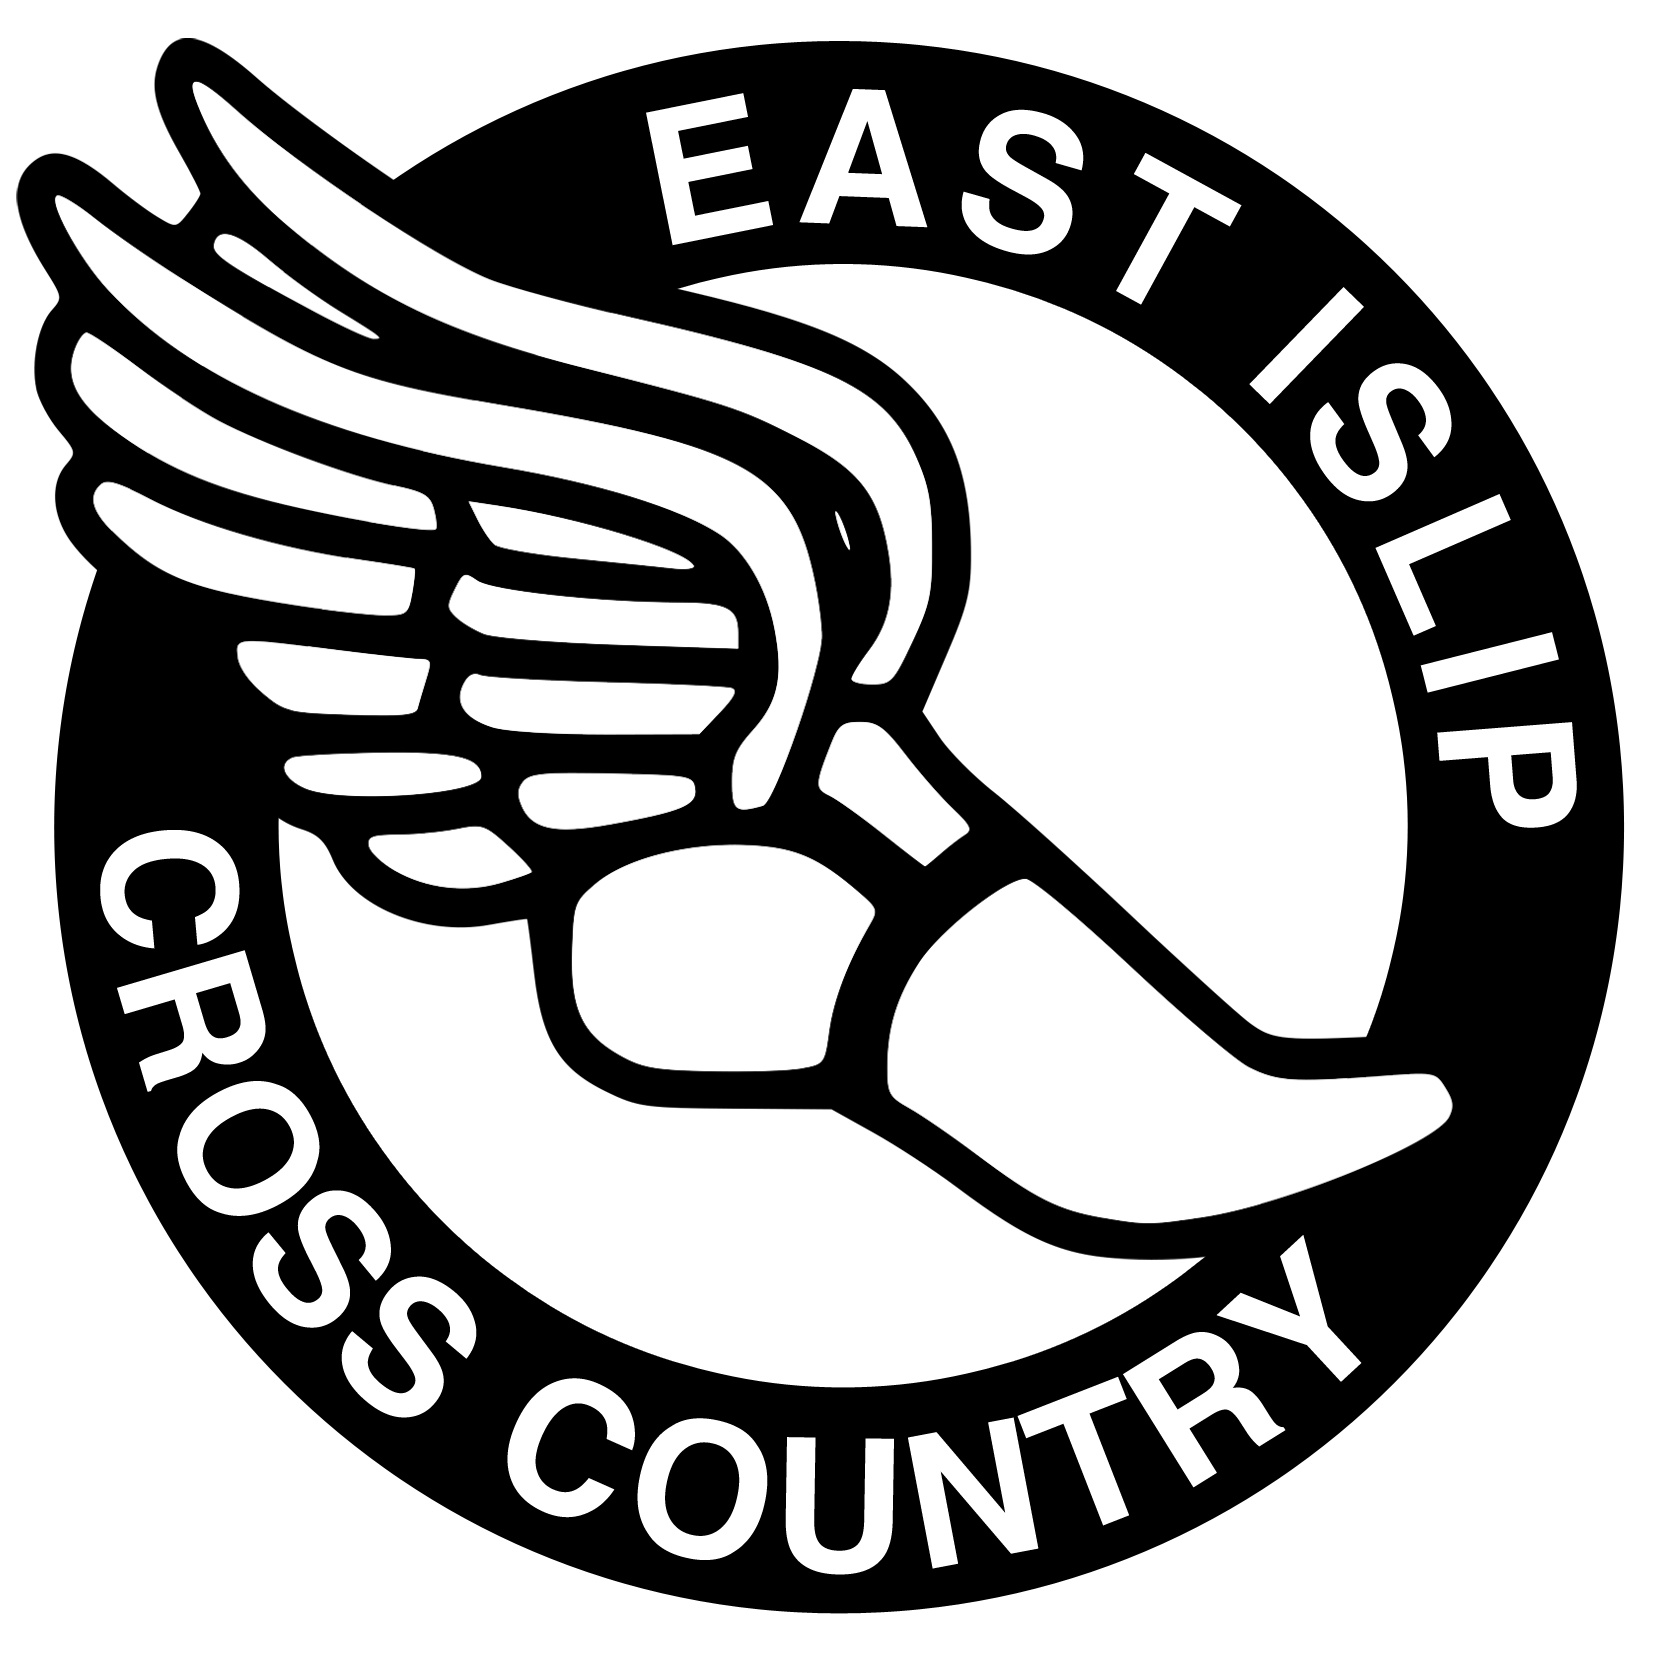 Cross Country Symbols - Cliparts.co